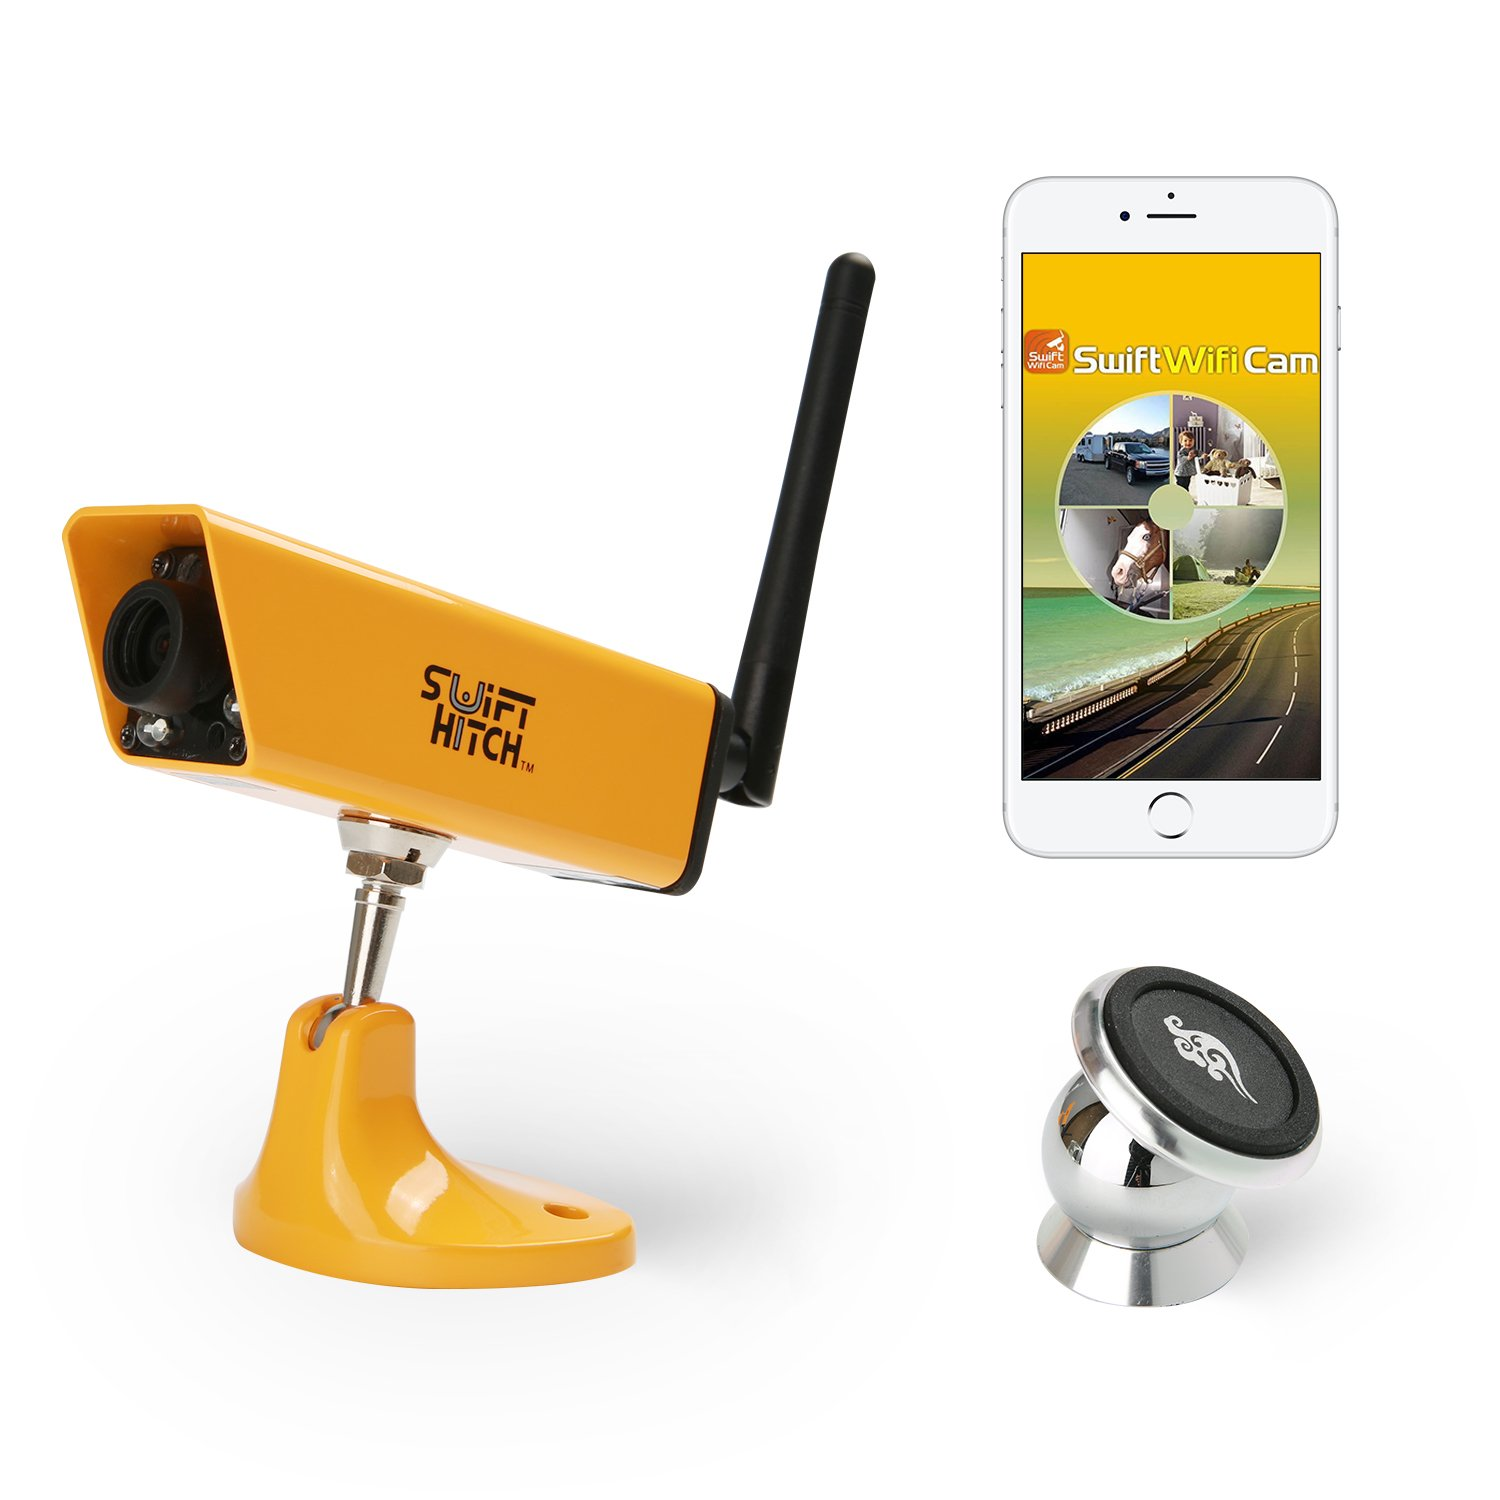 Swift Hitch SH04 Wireless Backup Camera System for Trailer Hitch Up, RV Rear View with Water Resistant and Magnetic Mount Features (iPhone / iPad, Android Device Supported, Viewed by WiFi Link) Suntronics Technologies Inc.